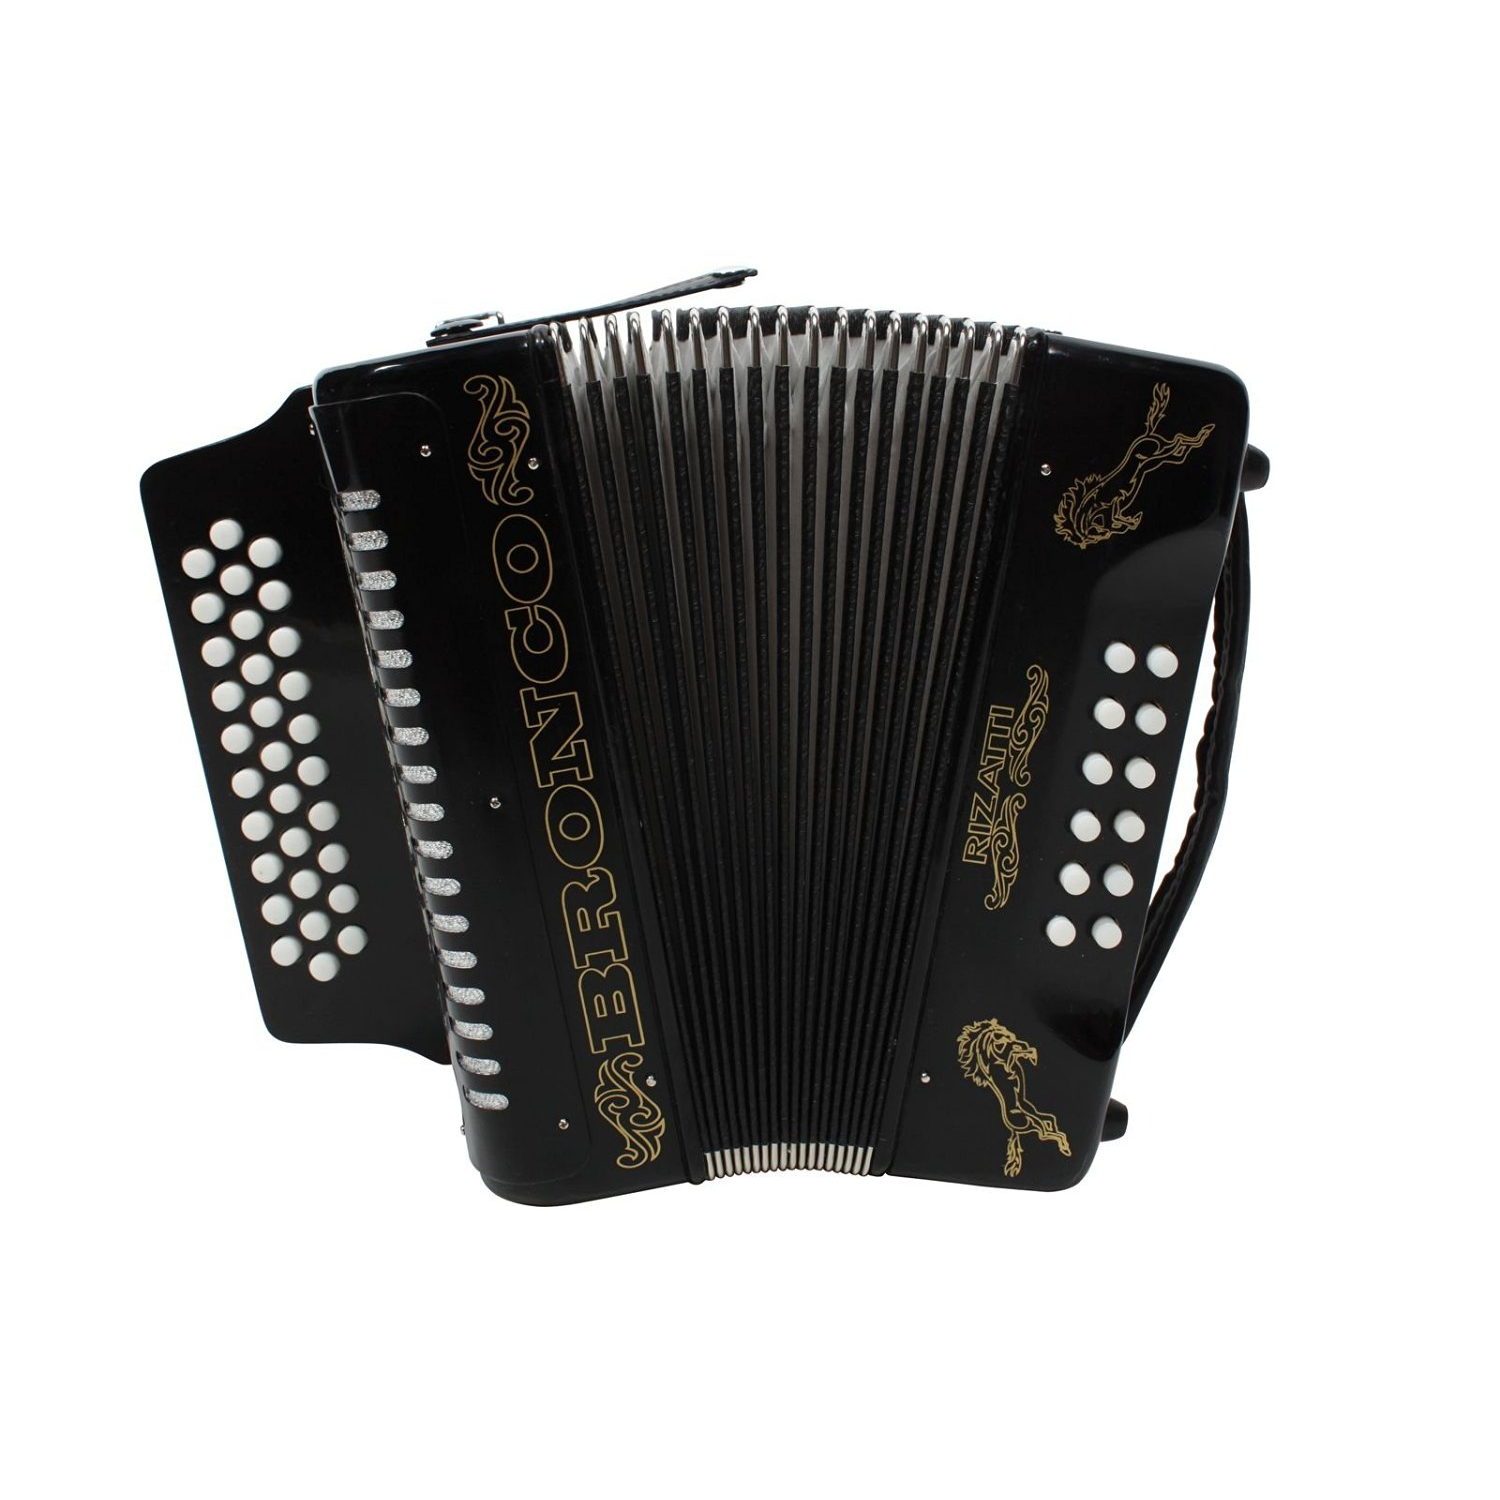 Rizatti Bronco RB31GB Diatonic Accordion - Black - Key G/C/F